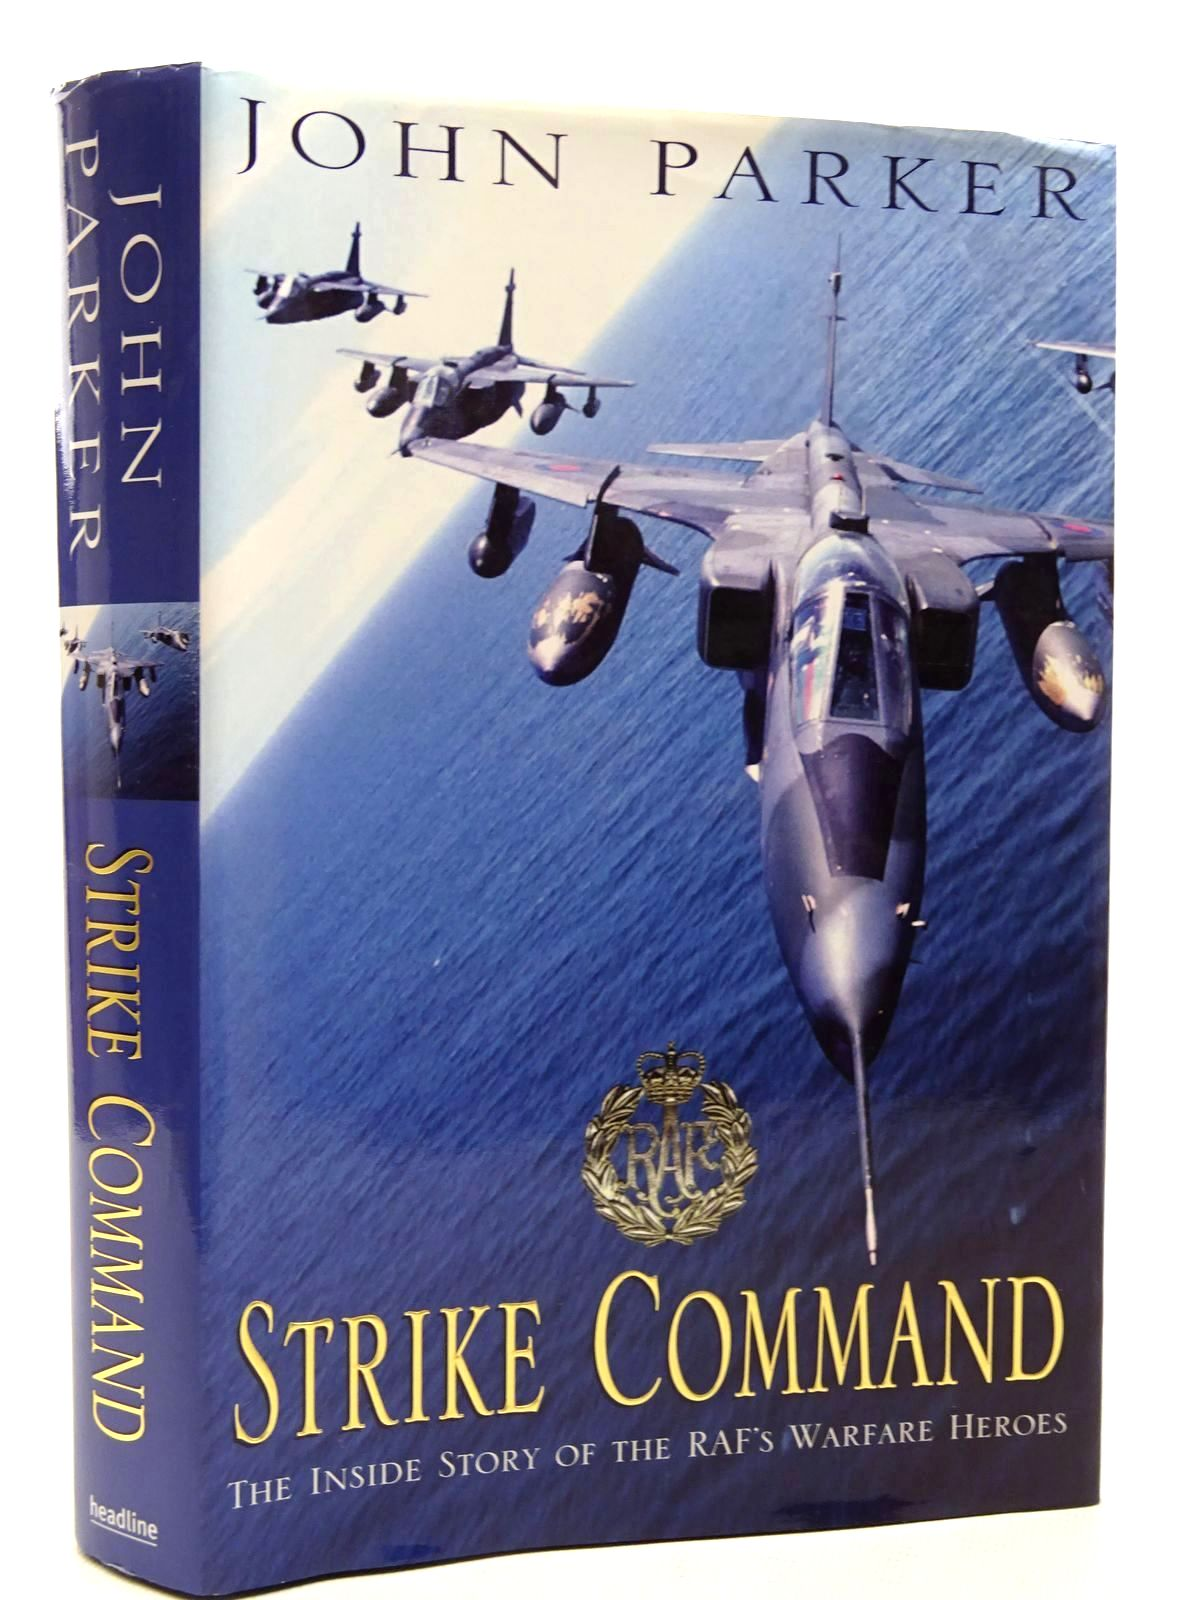 Photo of STRIKE COMMAND: THE INSIDE STORY OF THE RAF'S WARFARE HEROES written by Parker, John published by Headline (STOCK CODE: 1815882)  for sale by Stella & Rose's Books